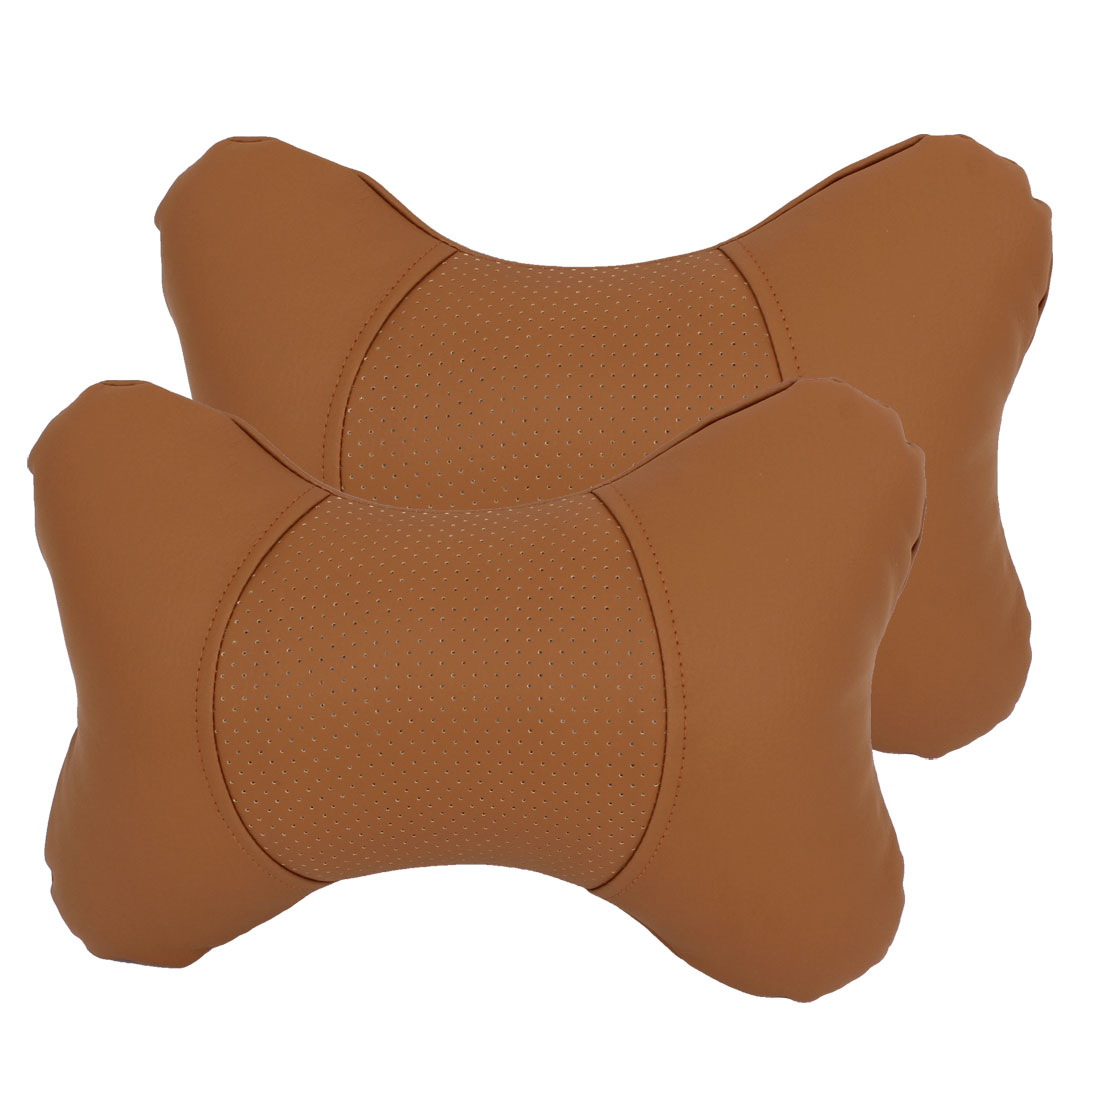 2 Pcs Brown Faux Leather Elastic Band Pillow Neck Rest Cushion